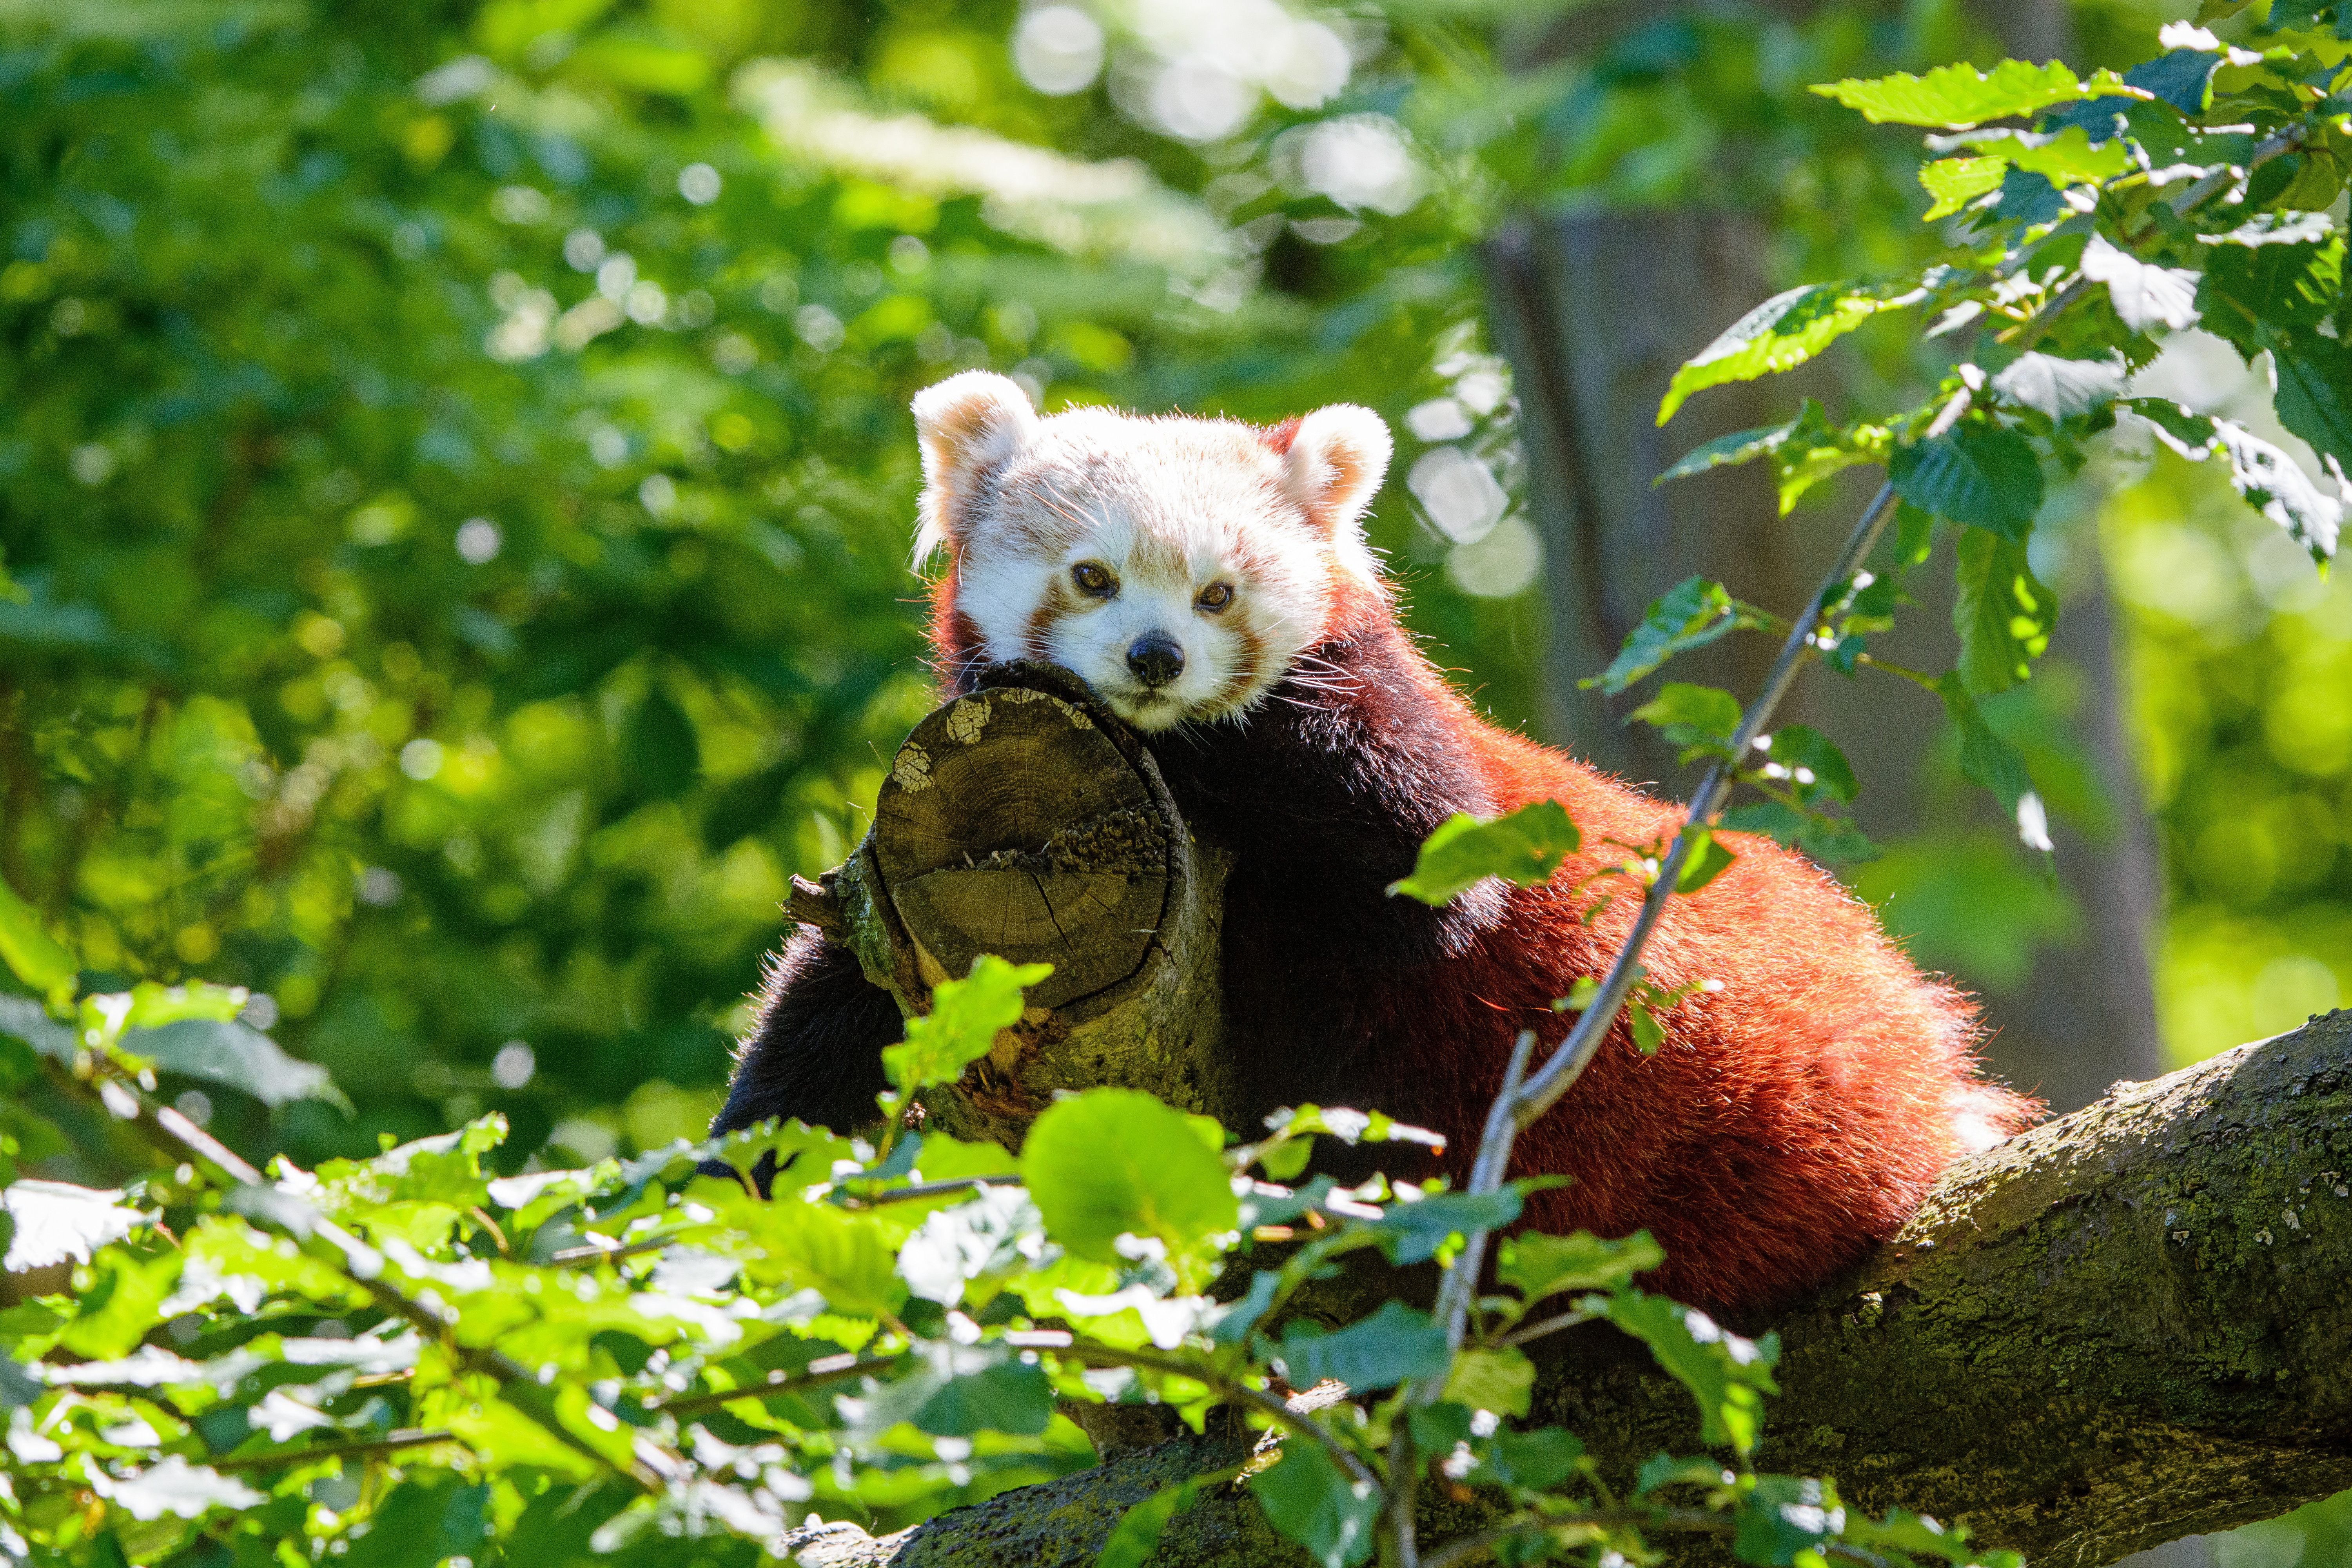 129189 download wallpaper Animals, Red Panda, Panda, Beast, Wood, Tree screensavers and pictures for free